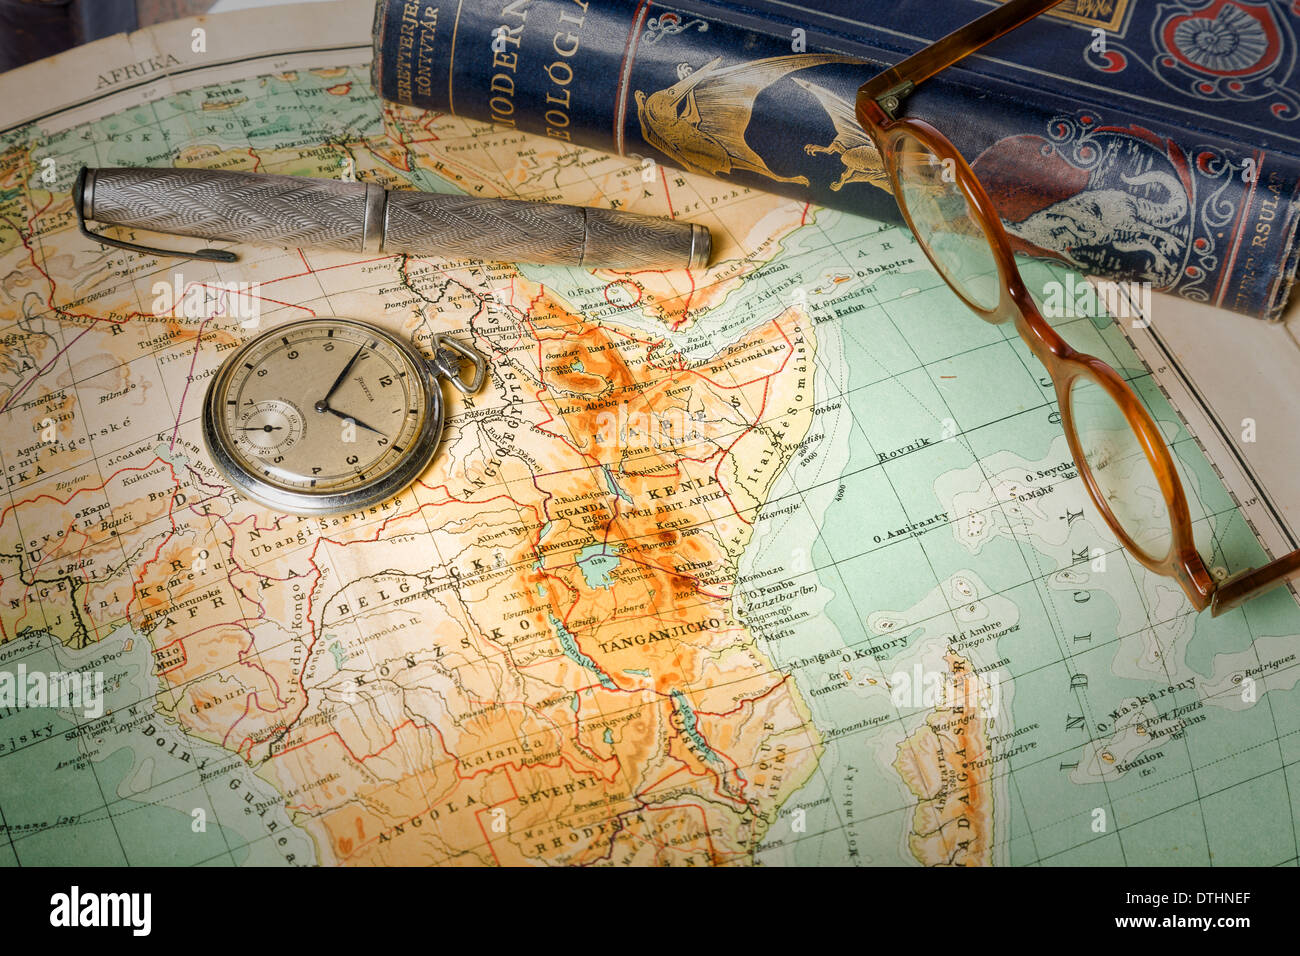 Old map of abyssinia stock photos old map of abyssinia stock old maps are large and interesting source of knowledge stock image publicscrutiny Image collections